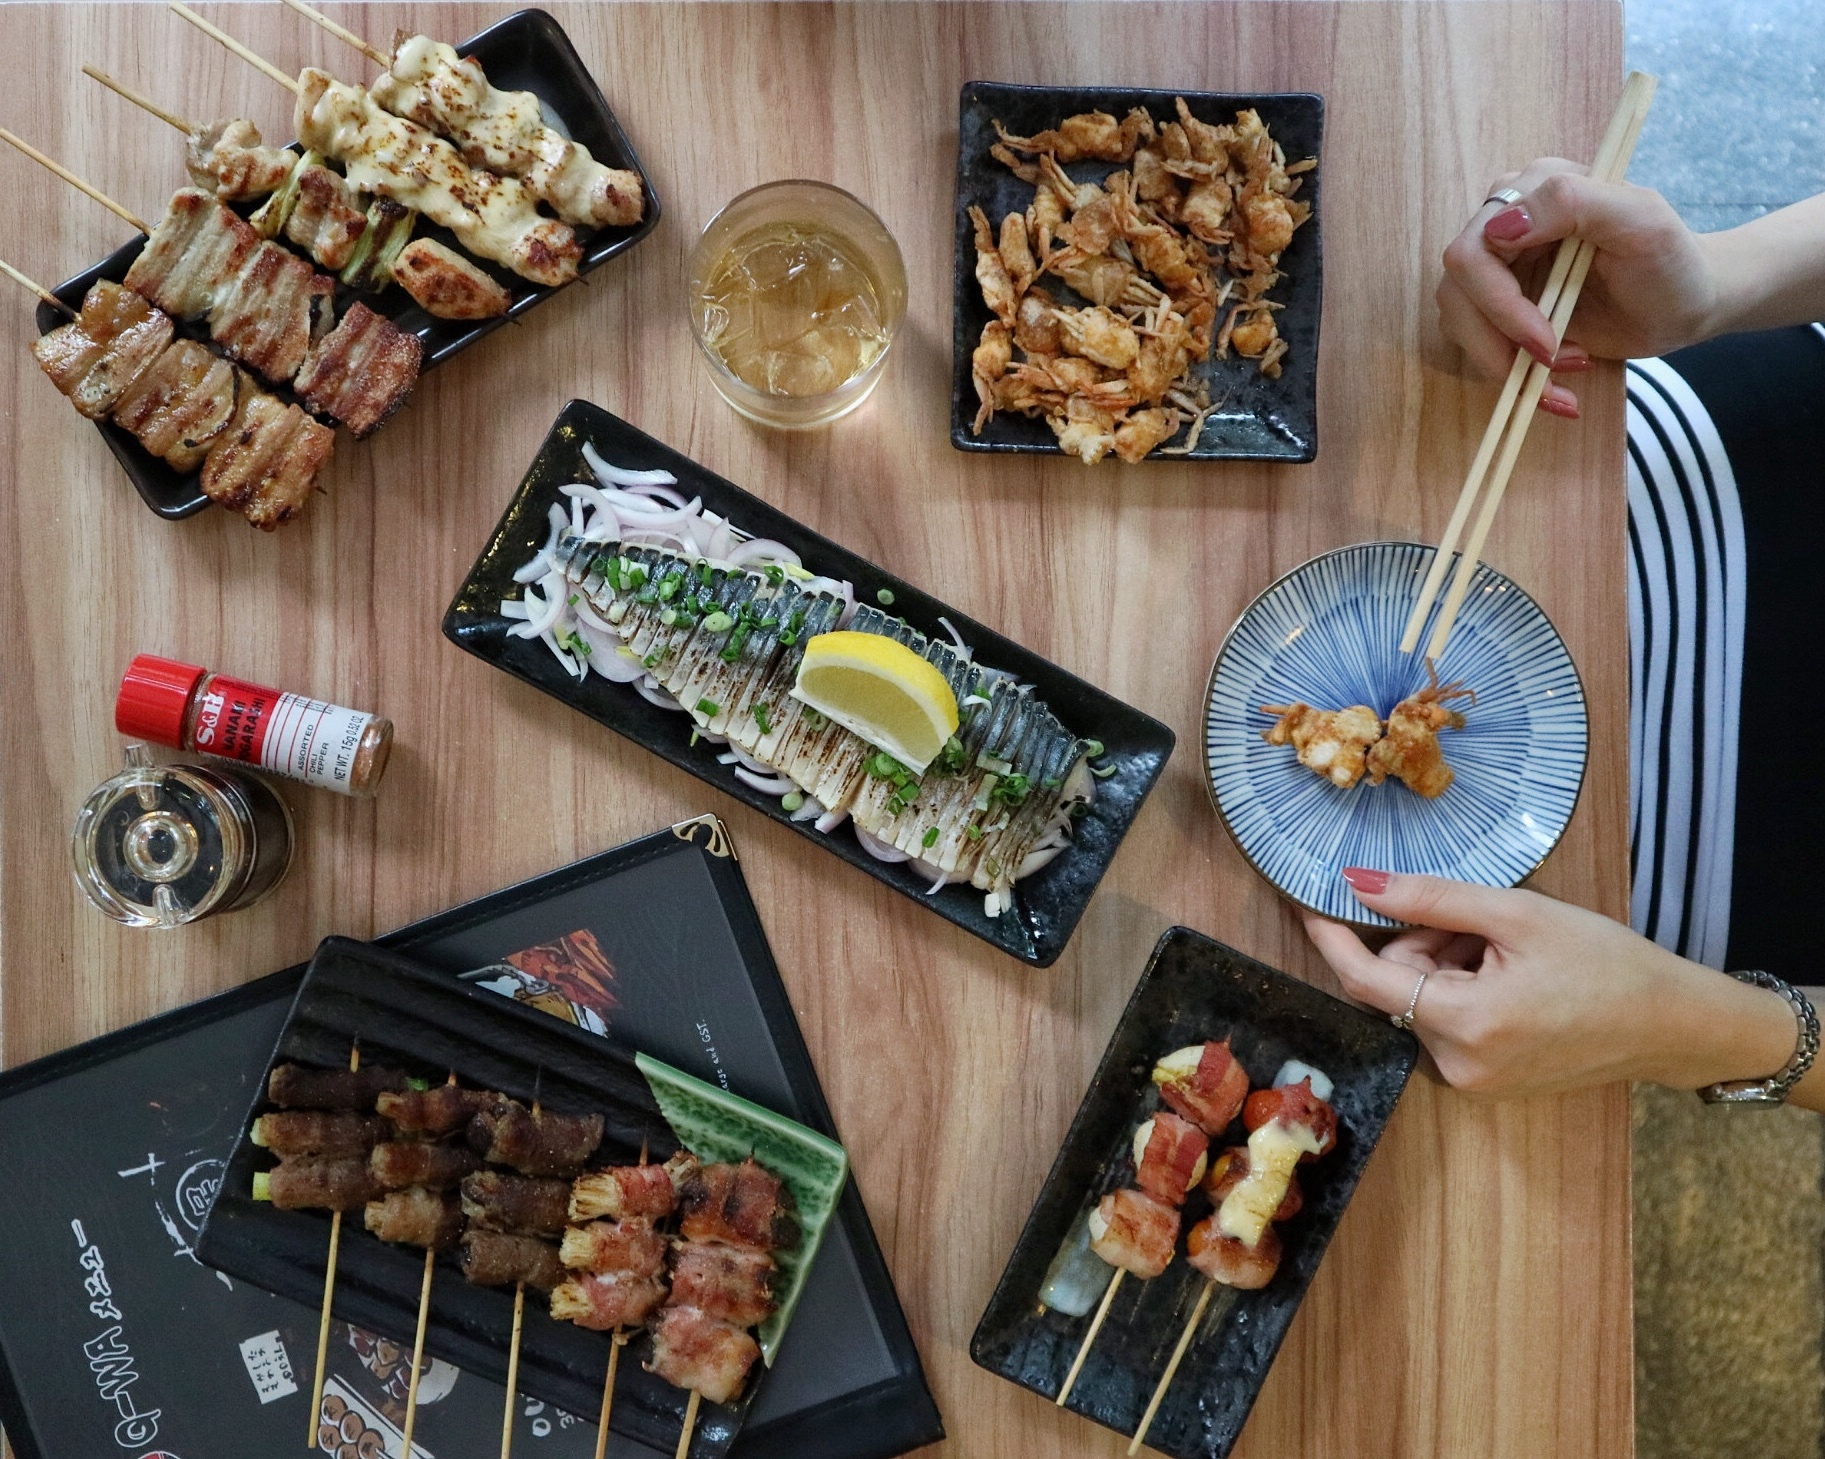 Q-WA Izakaya: Opens New Outlet at Bugis; Skewers & Sake Party!